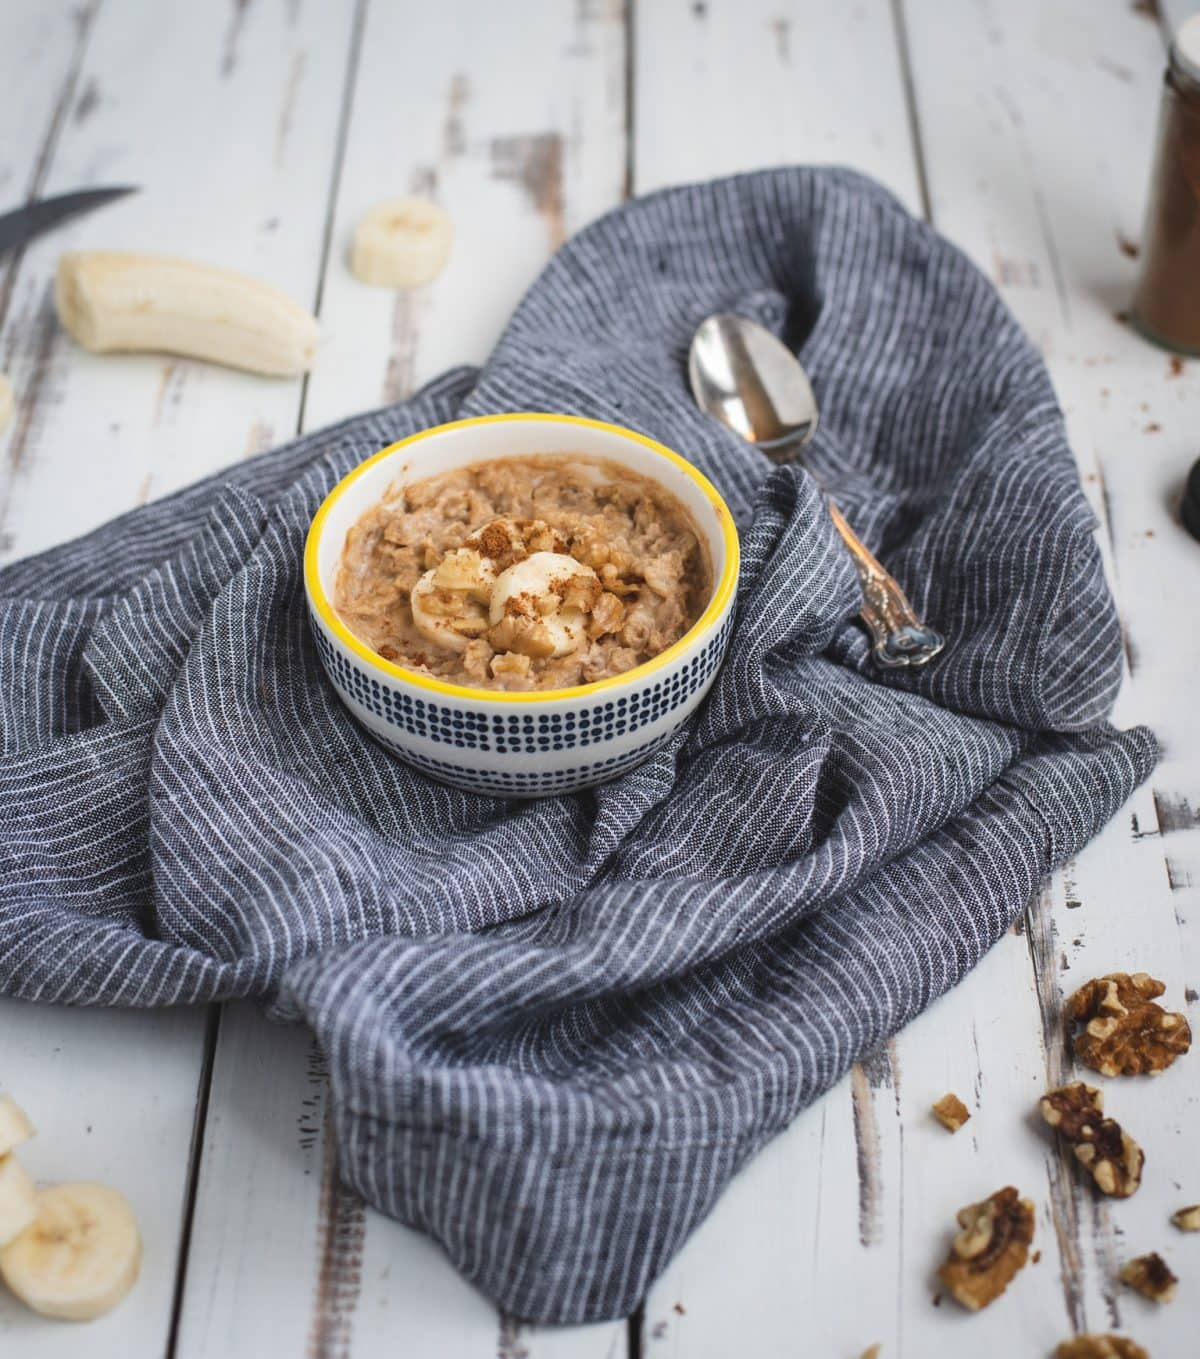 peanut butter banana oats from microwave in a bowl